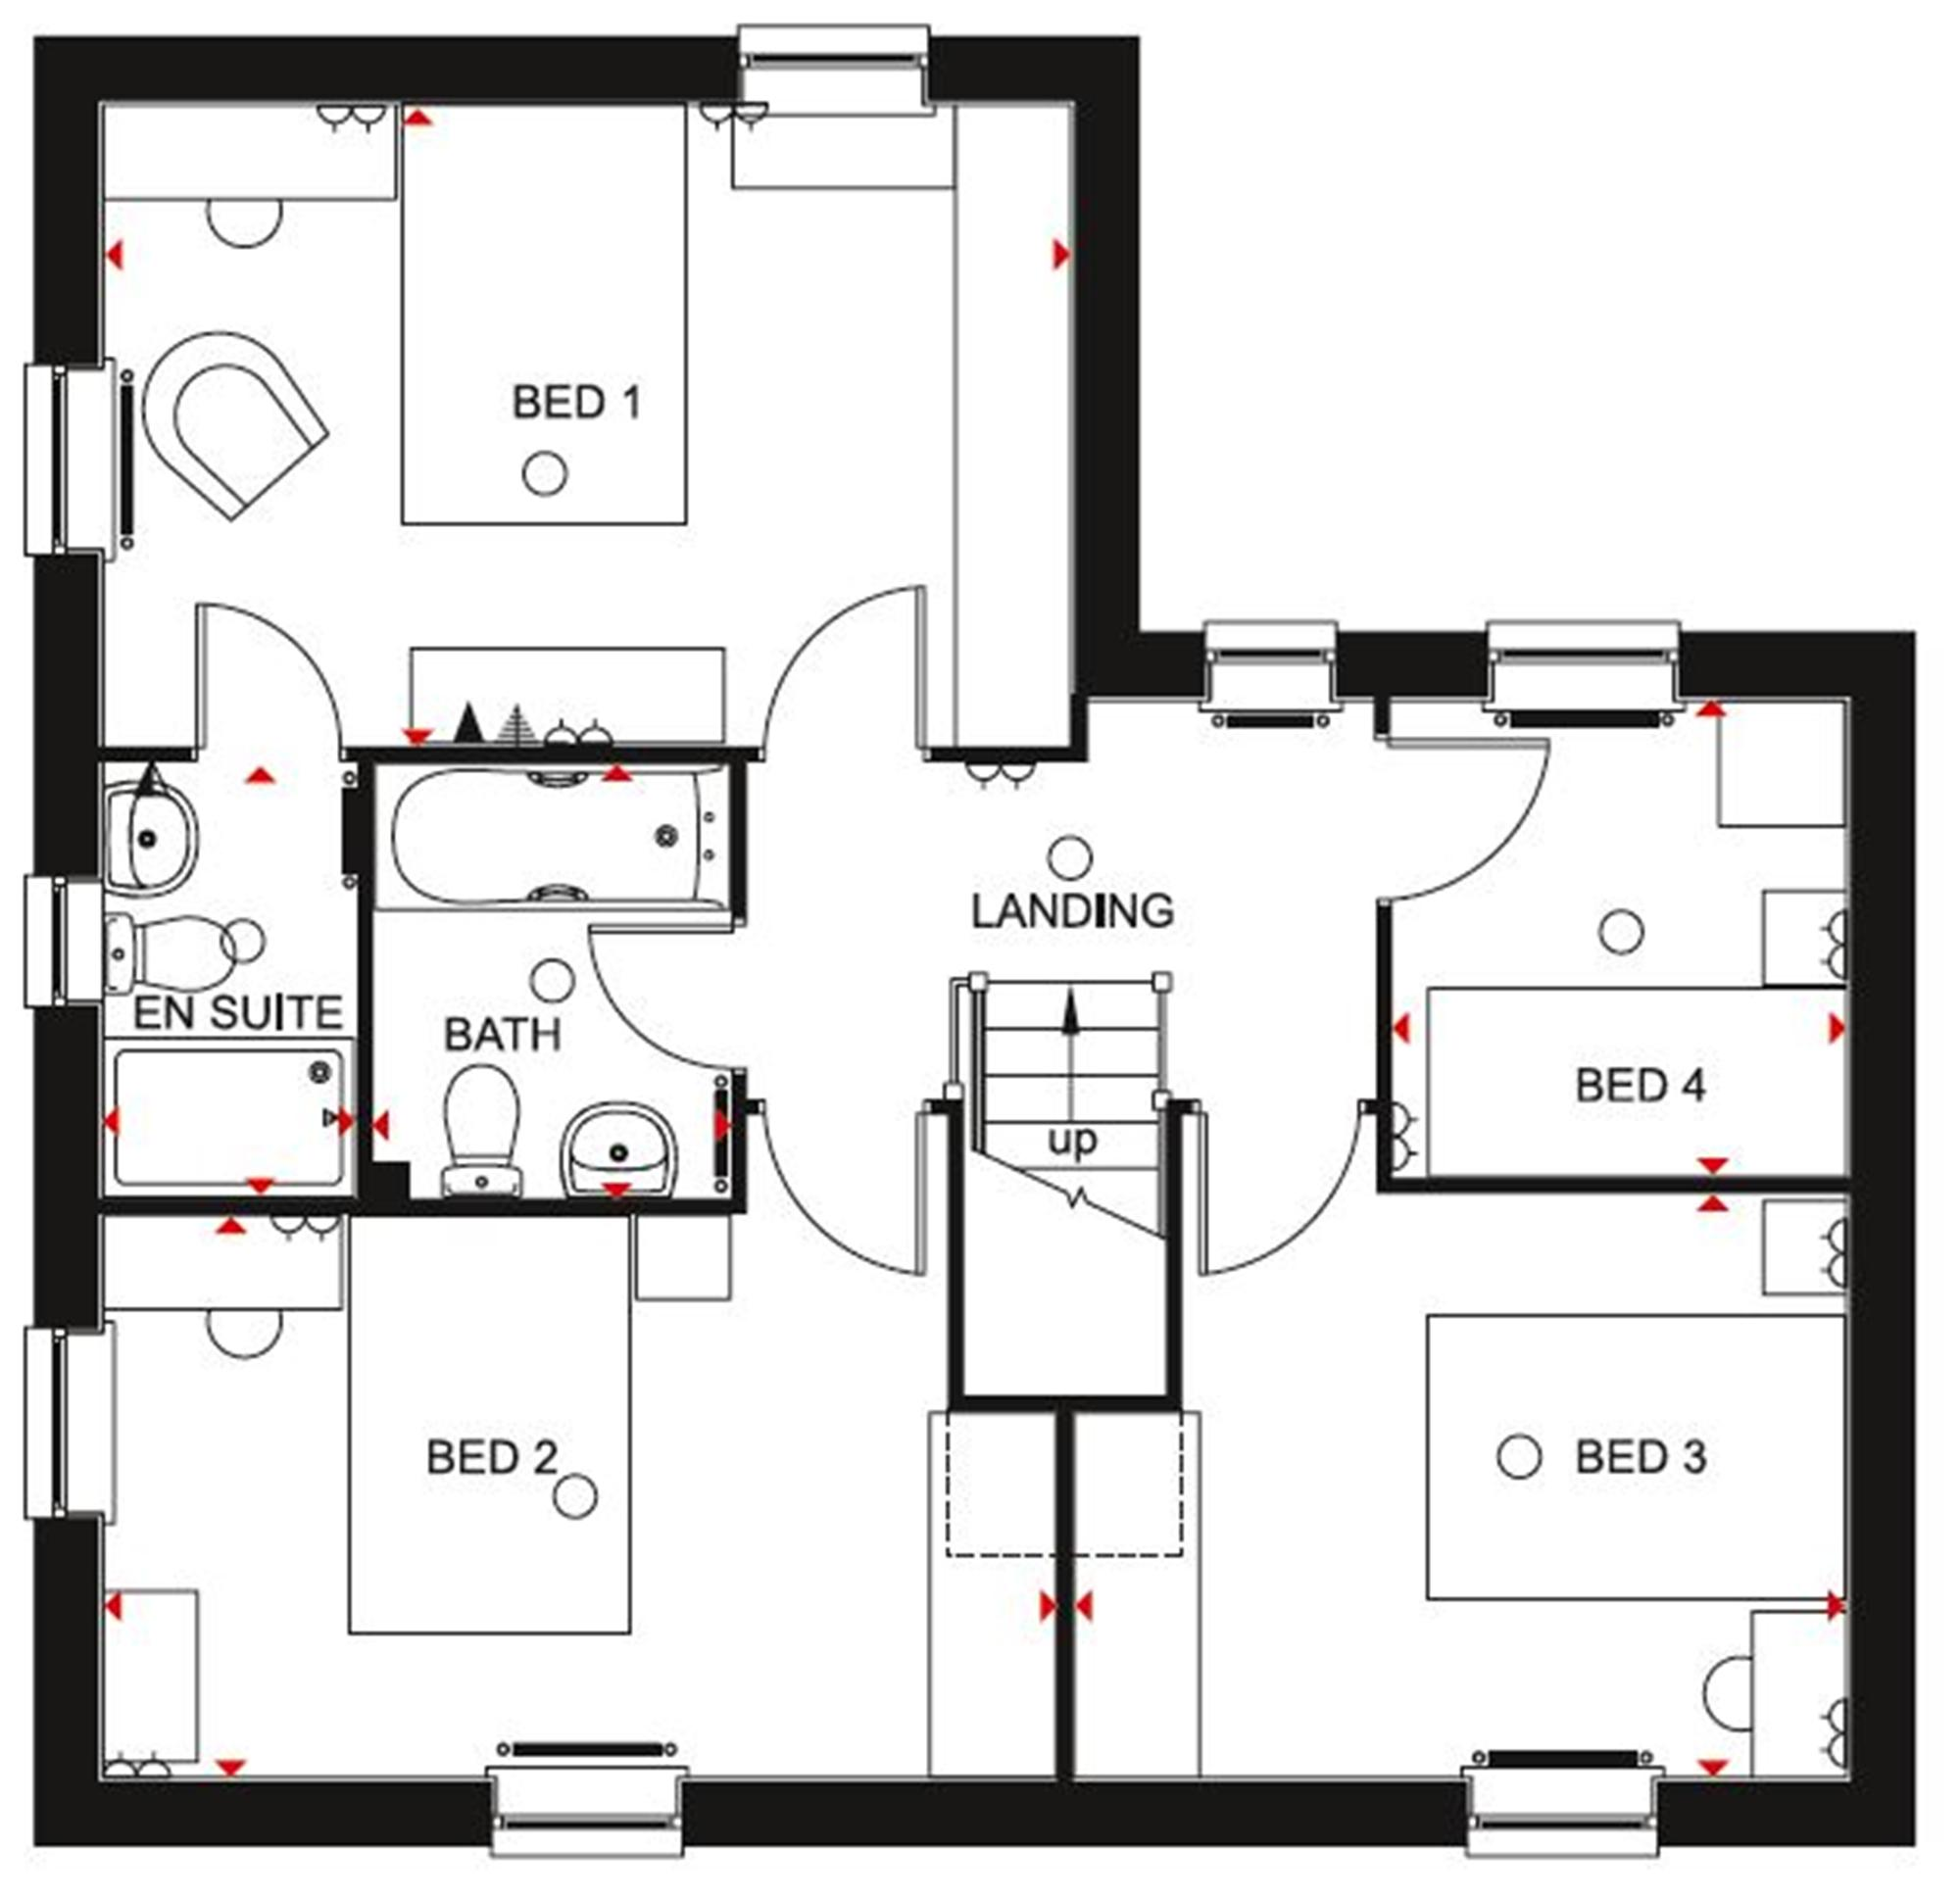 Barratt Homes Floor Plans David Wilson Homes Floor Plans Barratt Homes Faringdon Floor Plan